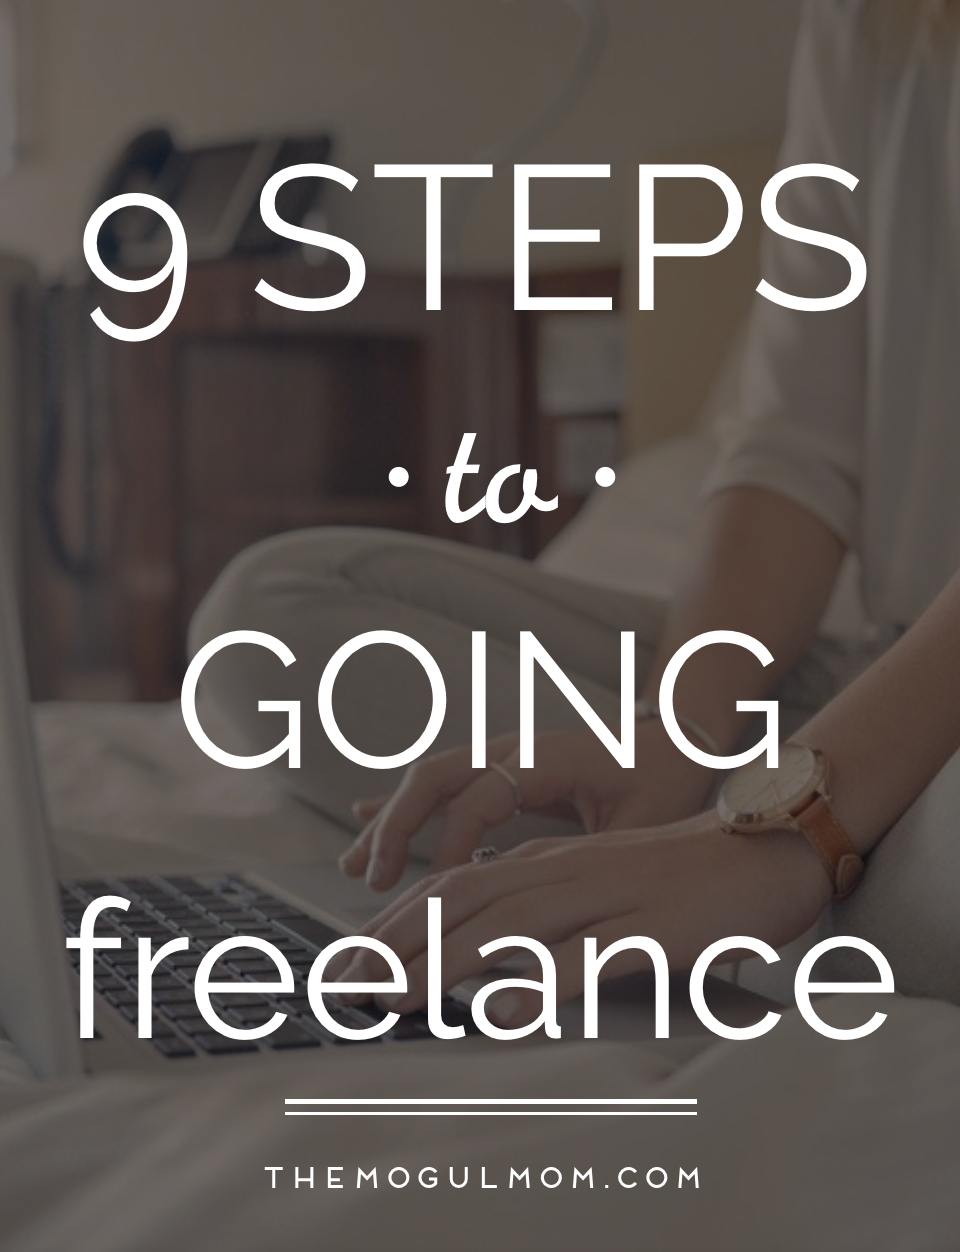 9 Steps to Going Freelance